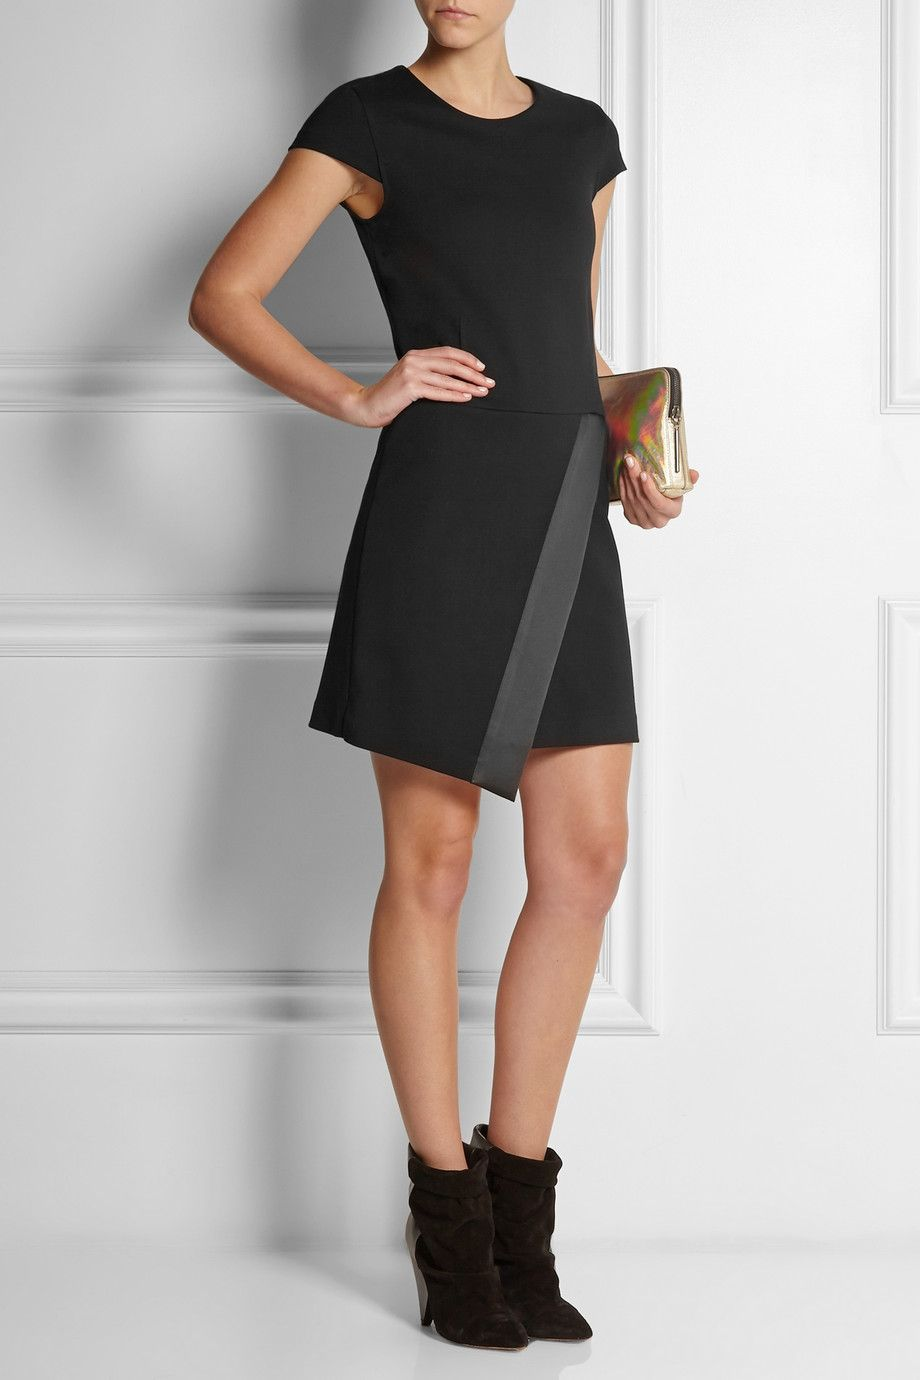 Karl lagerfeld nadya satintrimmed stretchjersey dress that